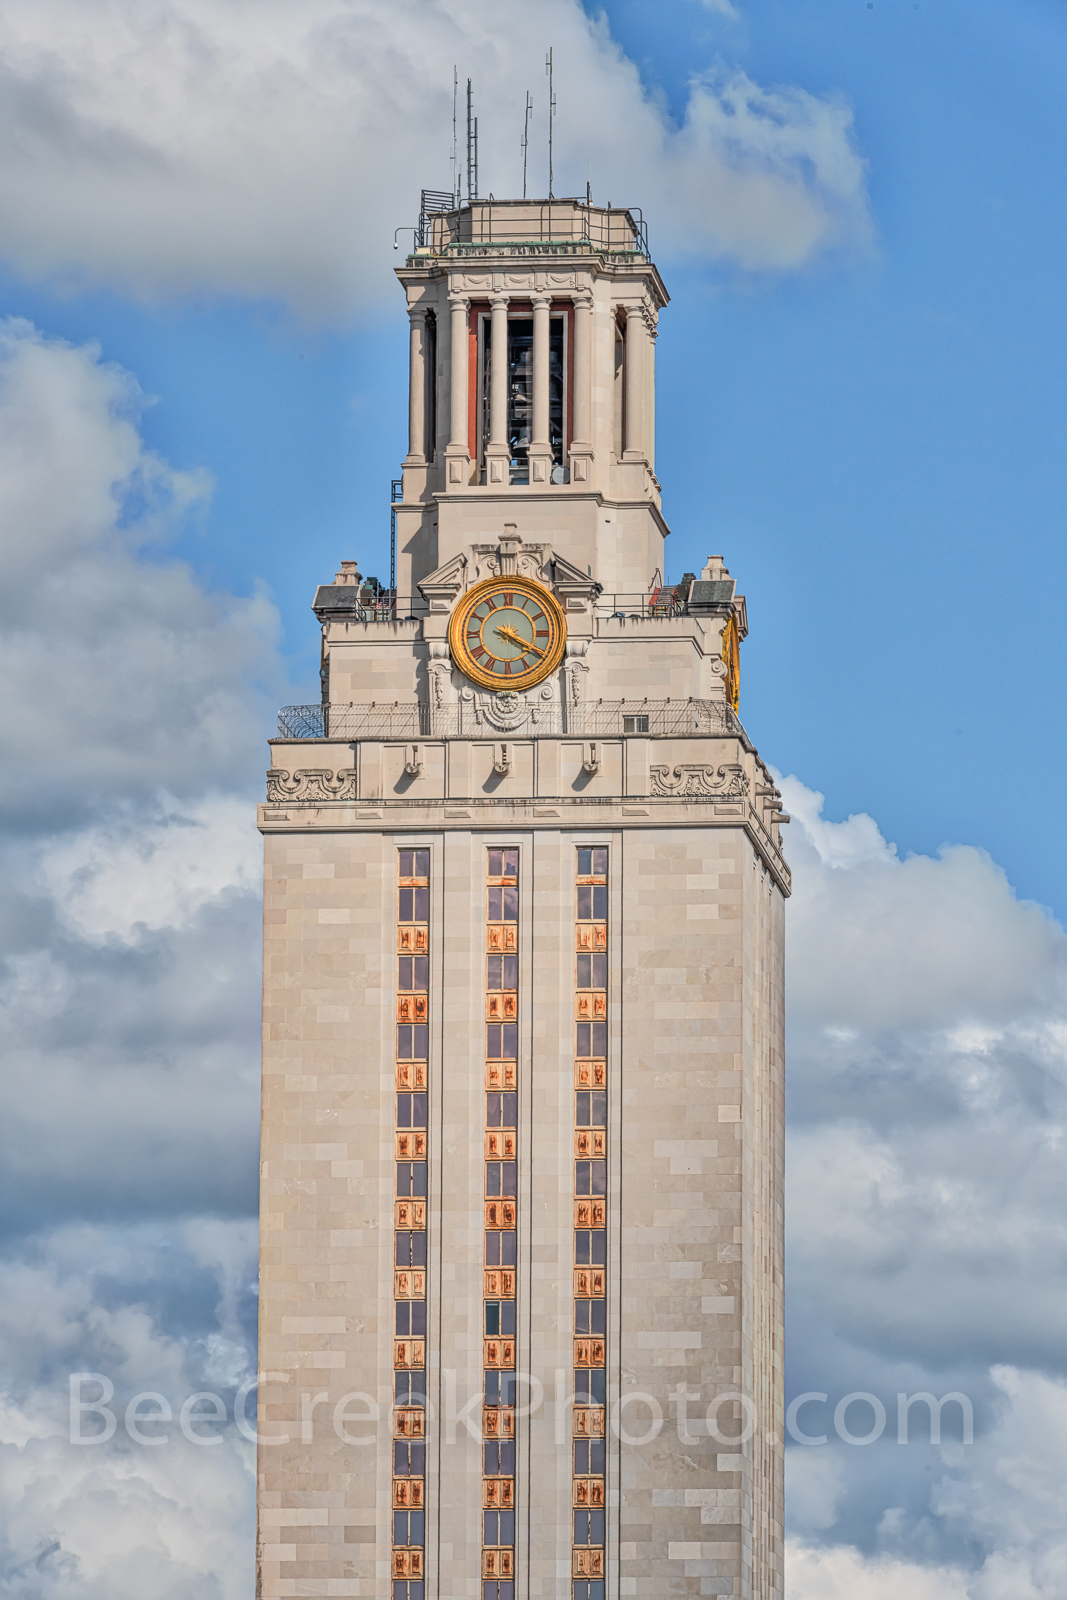 UT Tower Day - UT Tower on the University of Texas campus taken during the day light hours with blue sky and nice clouds up close...